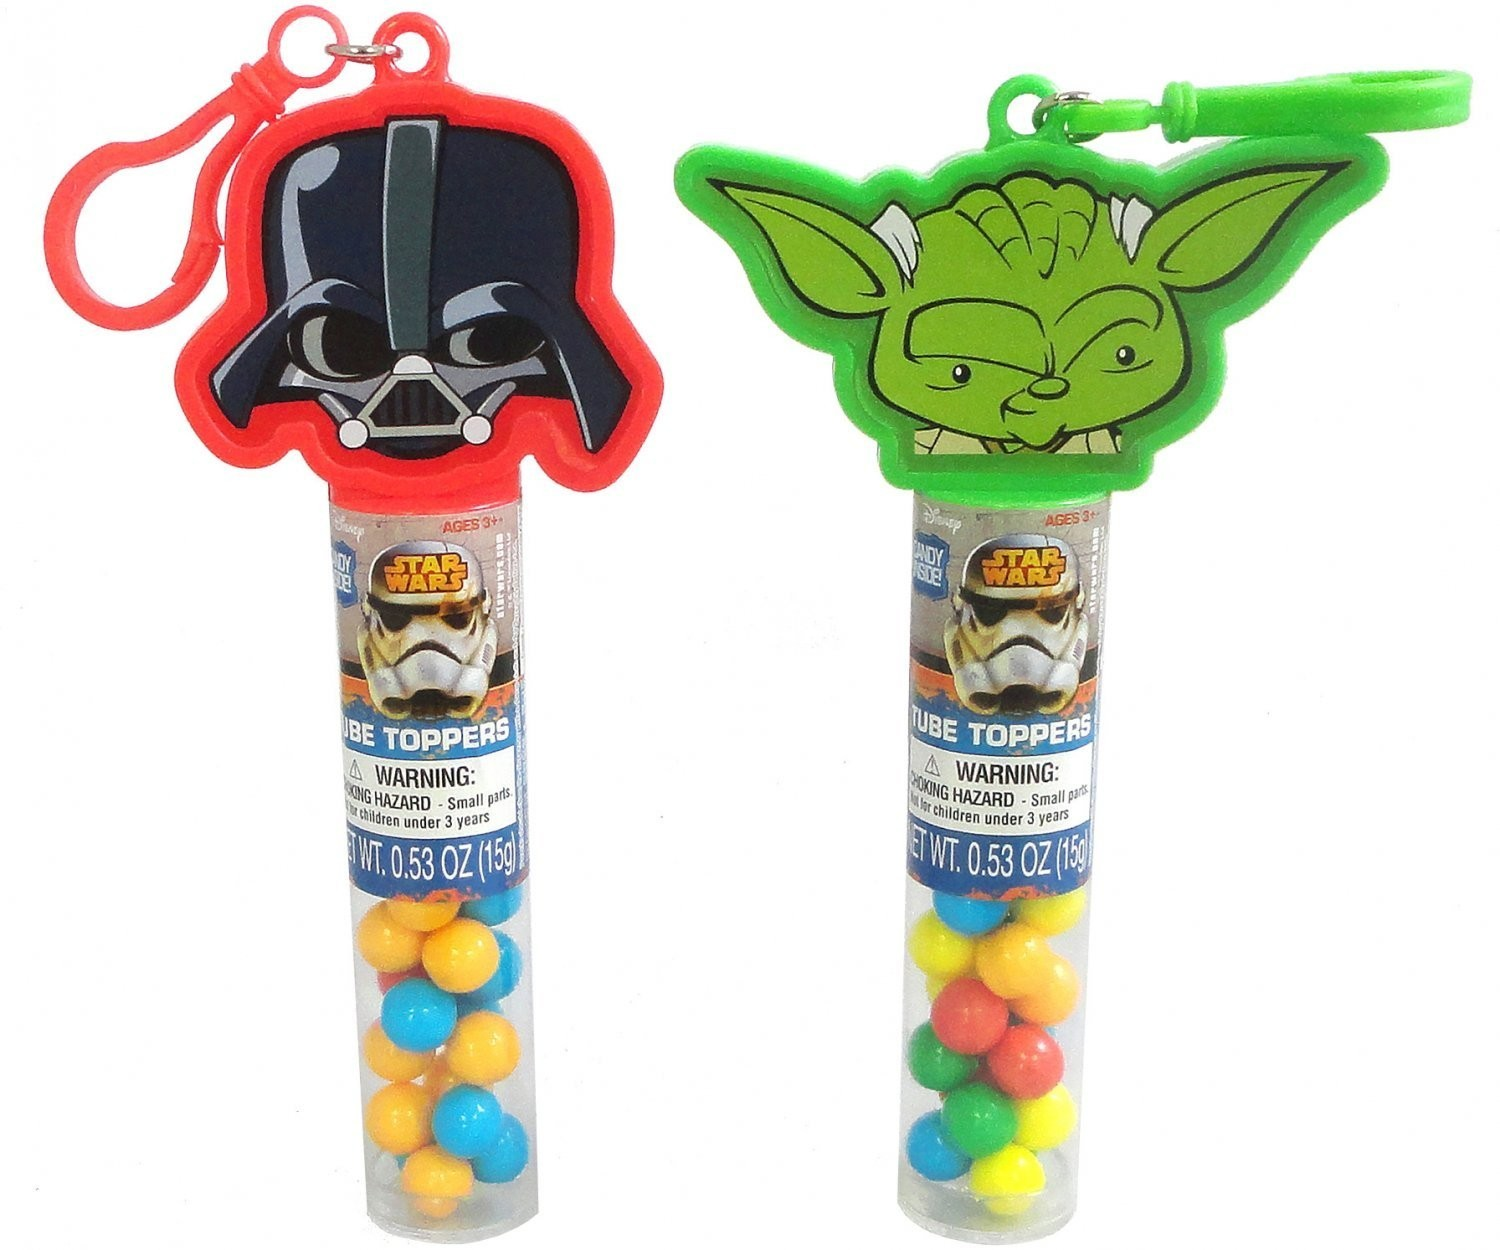 Star Wars Star Wars Collectible Tube Topper with Key Chain